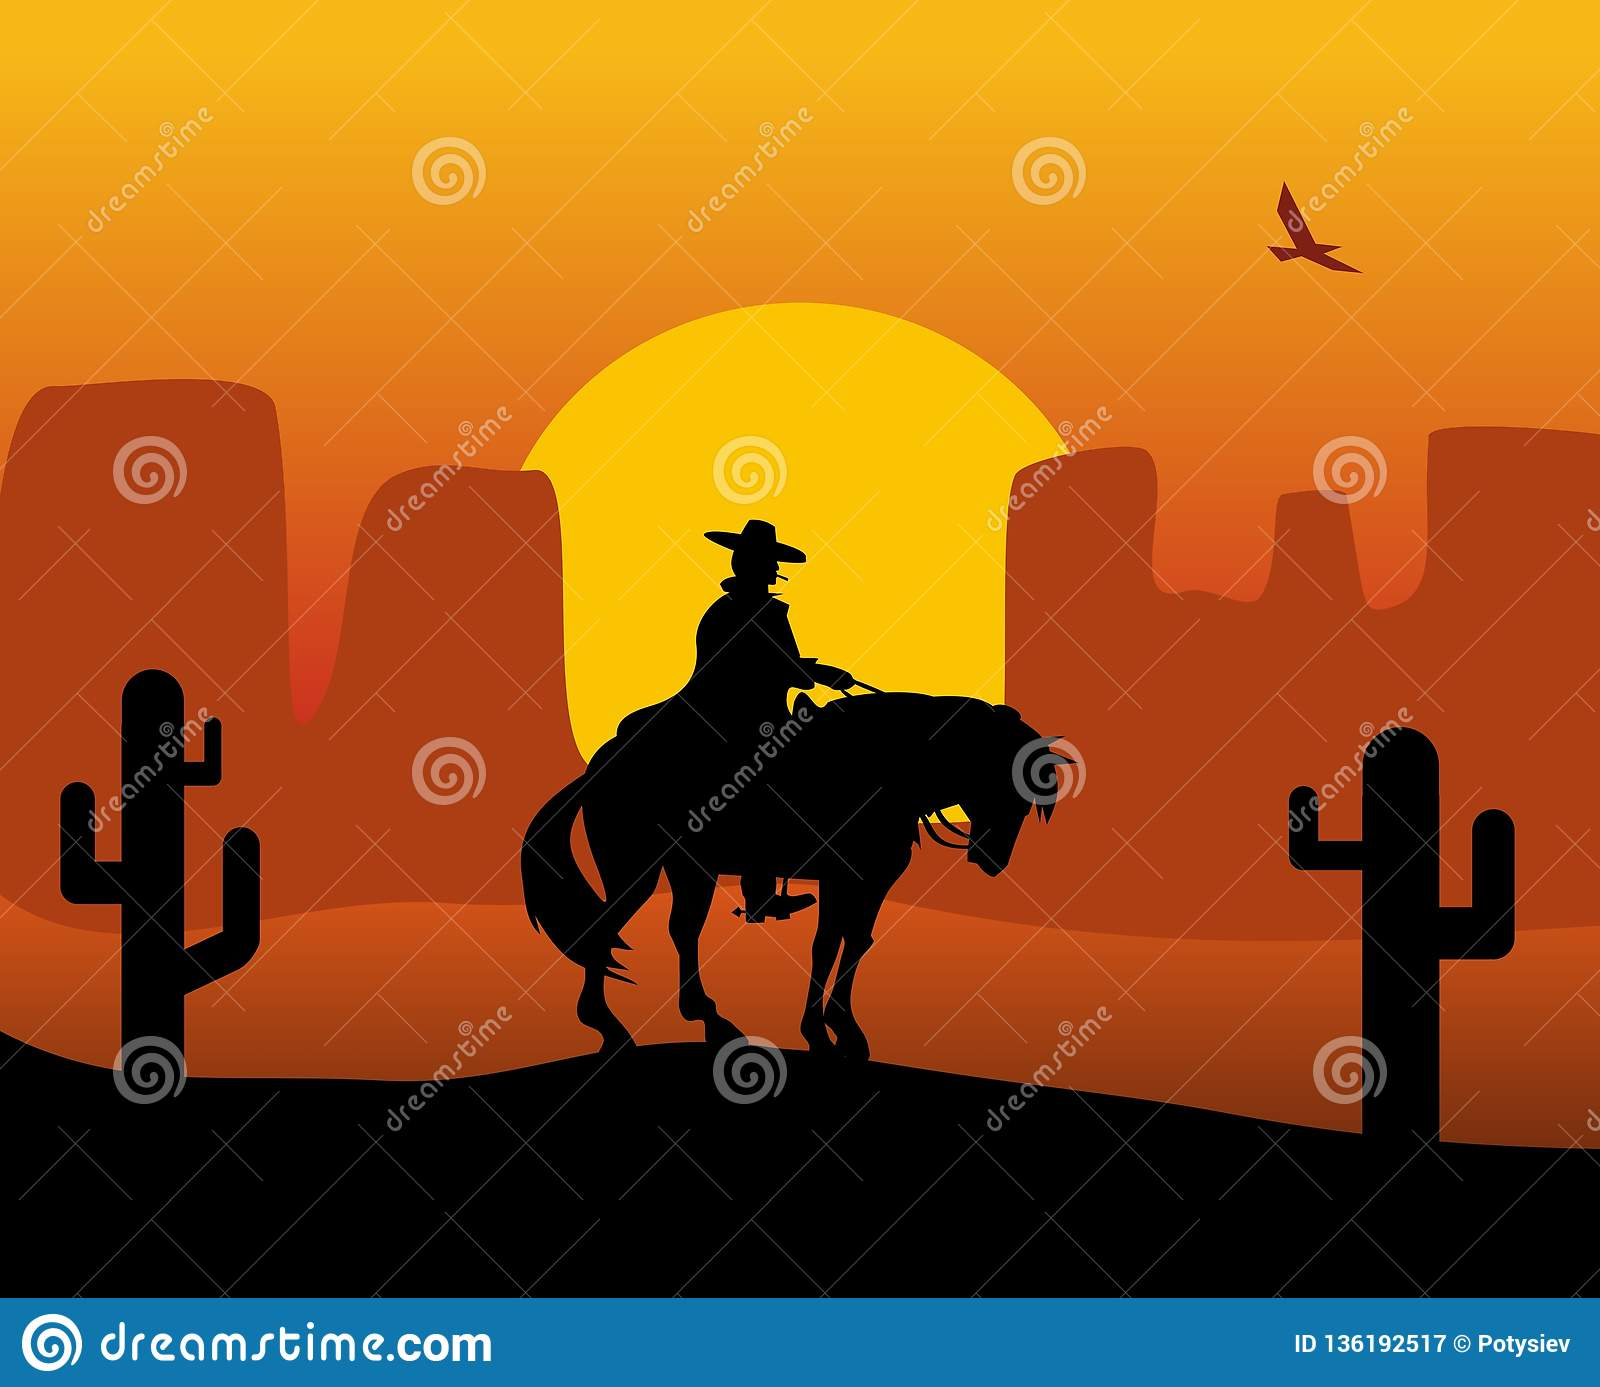 Wild West Gunslinger In A Raincoat Riding A Horse Background The Desert Stock Vector Illustration Of Riding American 136192517